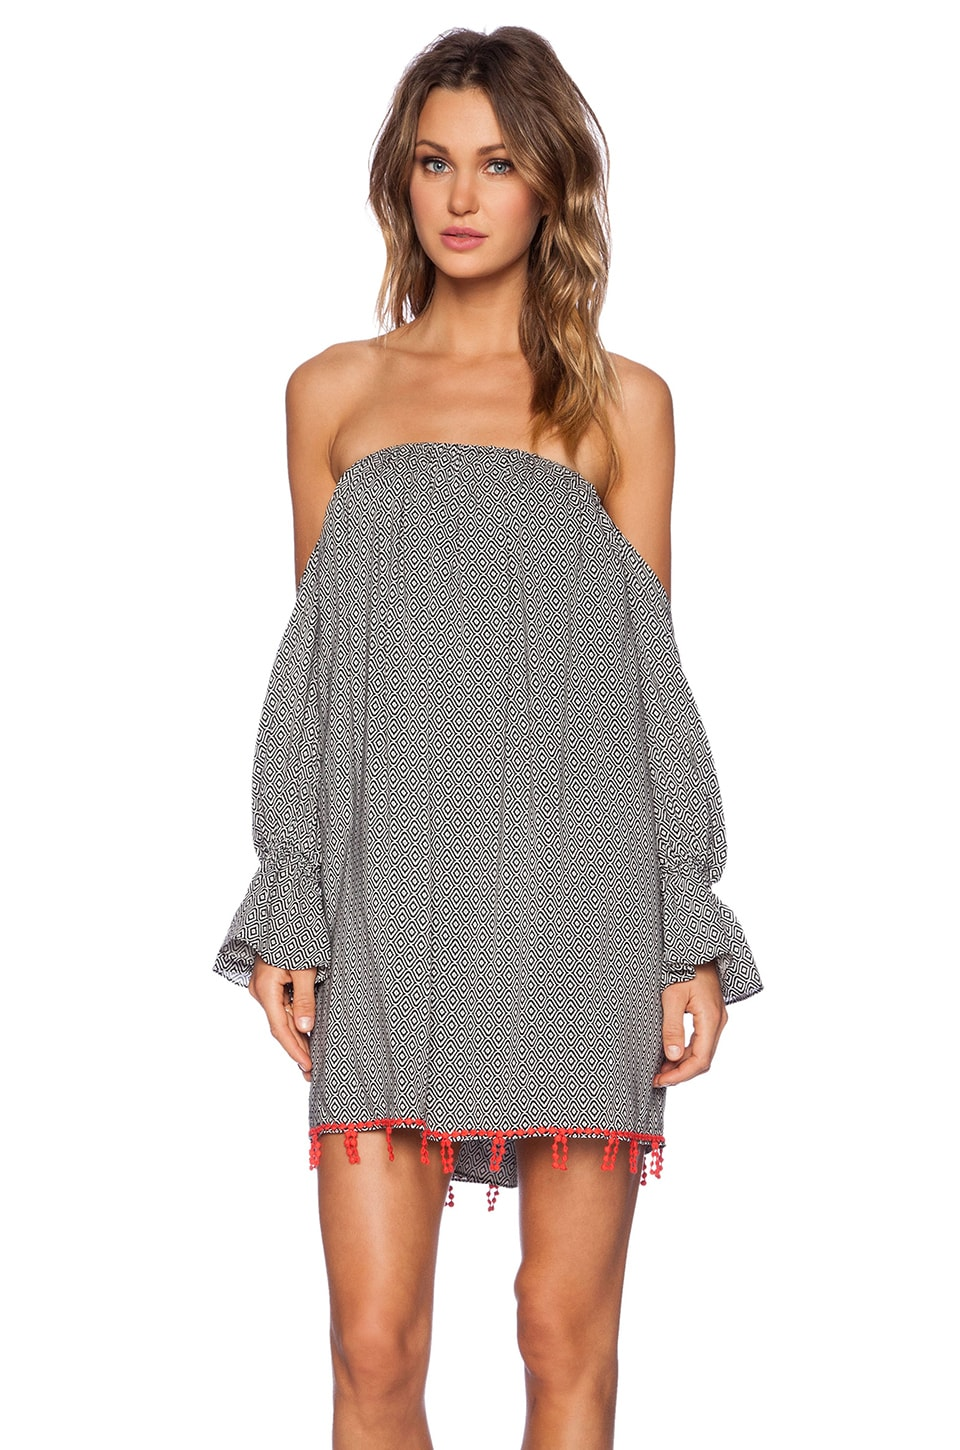 T-Bags LosAngeles Cold Shoulder Dress in Black & White Geo